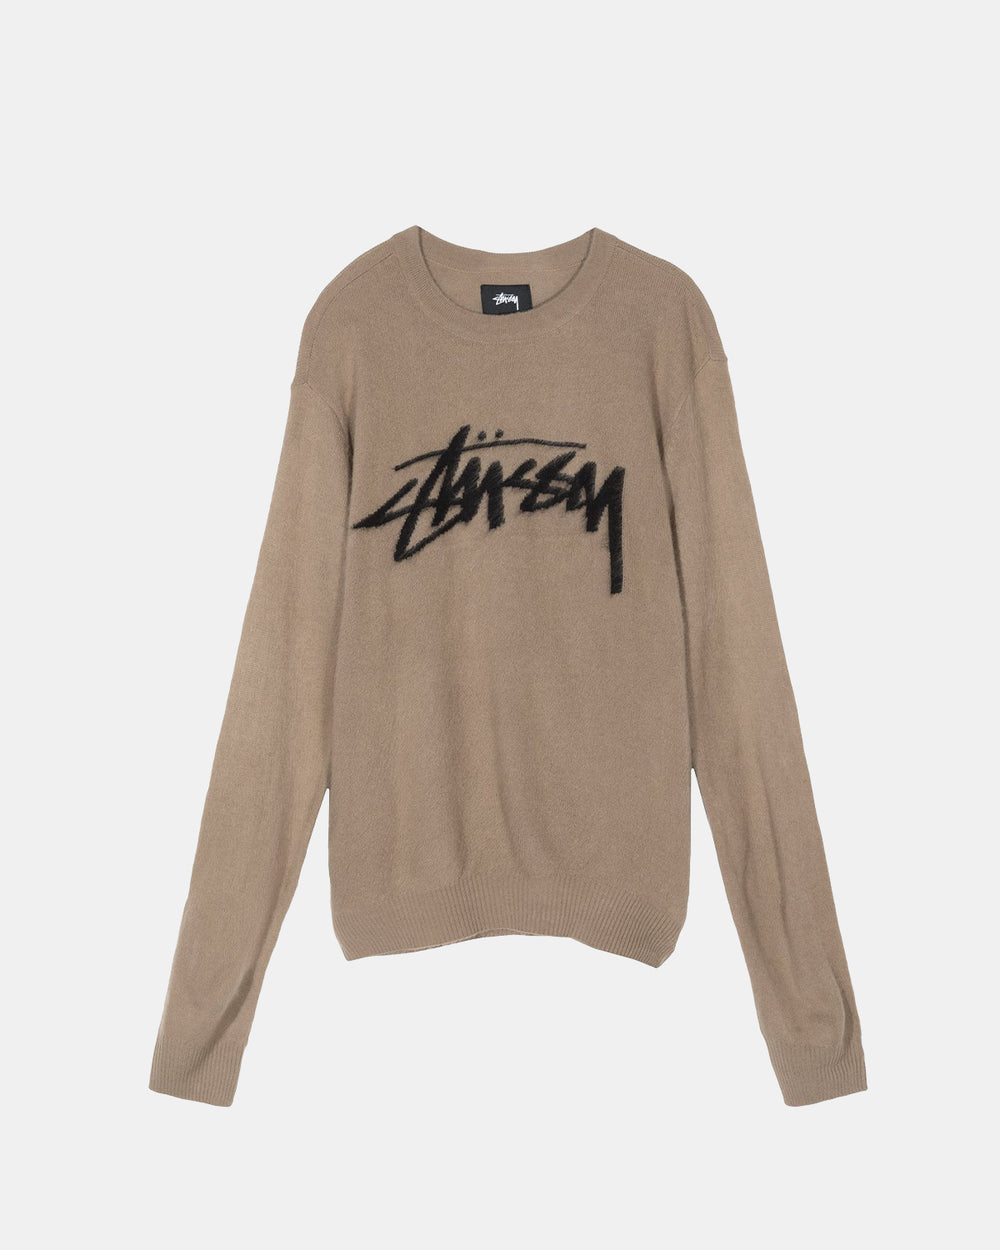 Stussy - Women's Brushed Out Logo Sweater (Taupe)